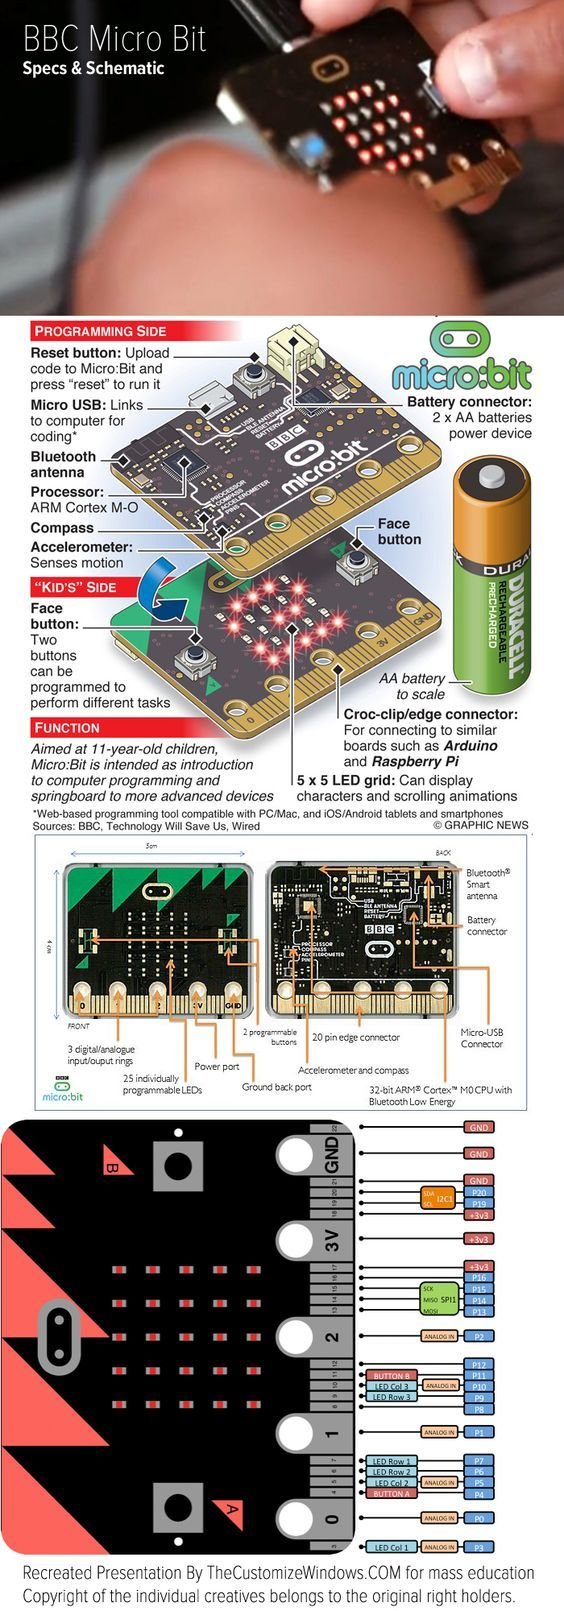 75 best development boards images on pinterest boards arduino and bbc microbit an embedded system for learning coding specifications and schematic fandeluxe Images